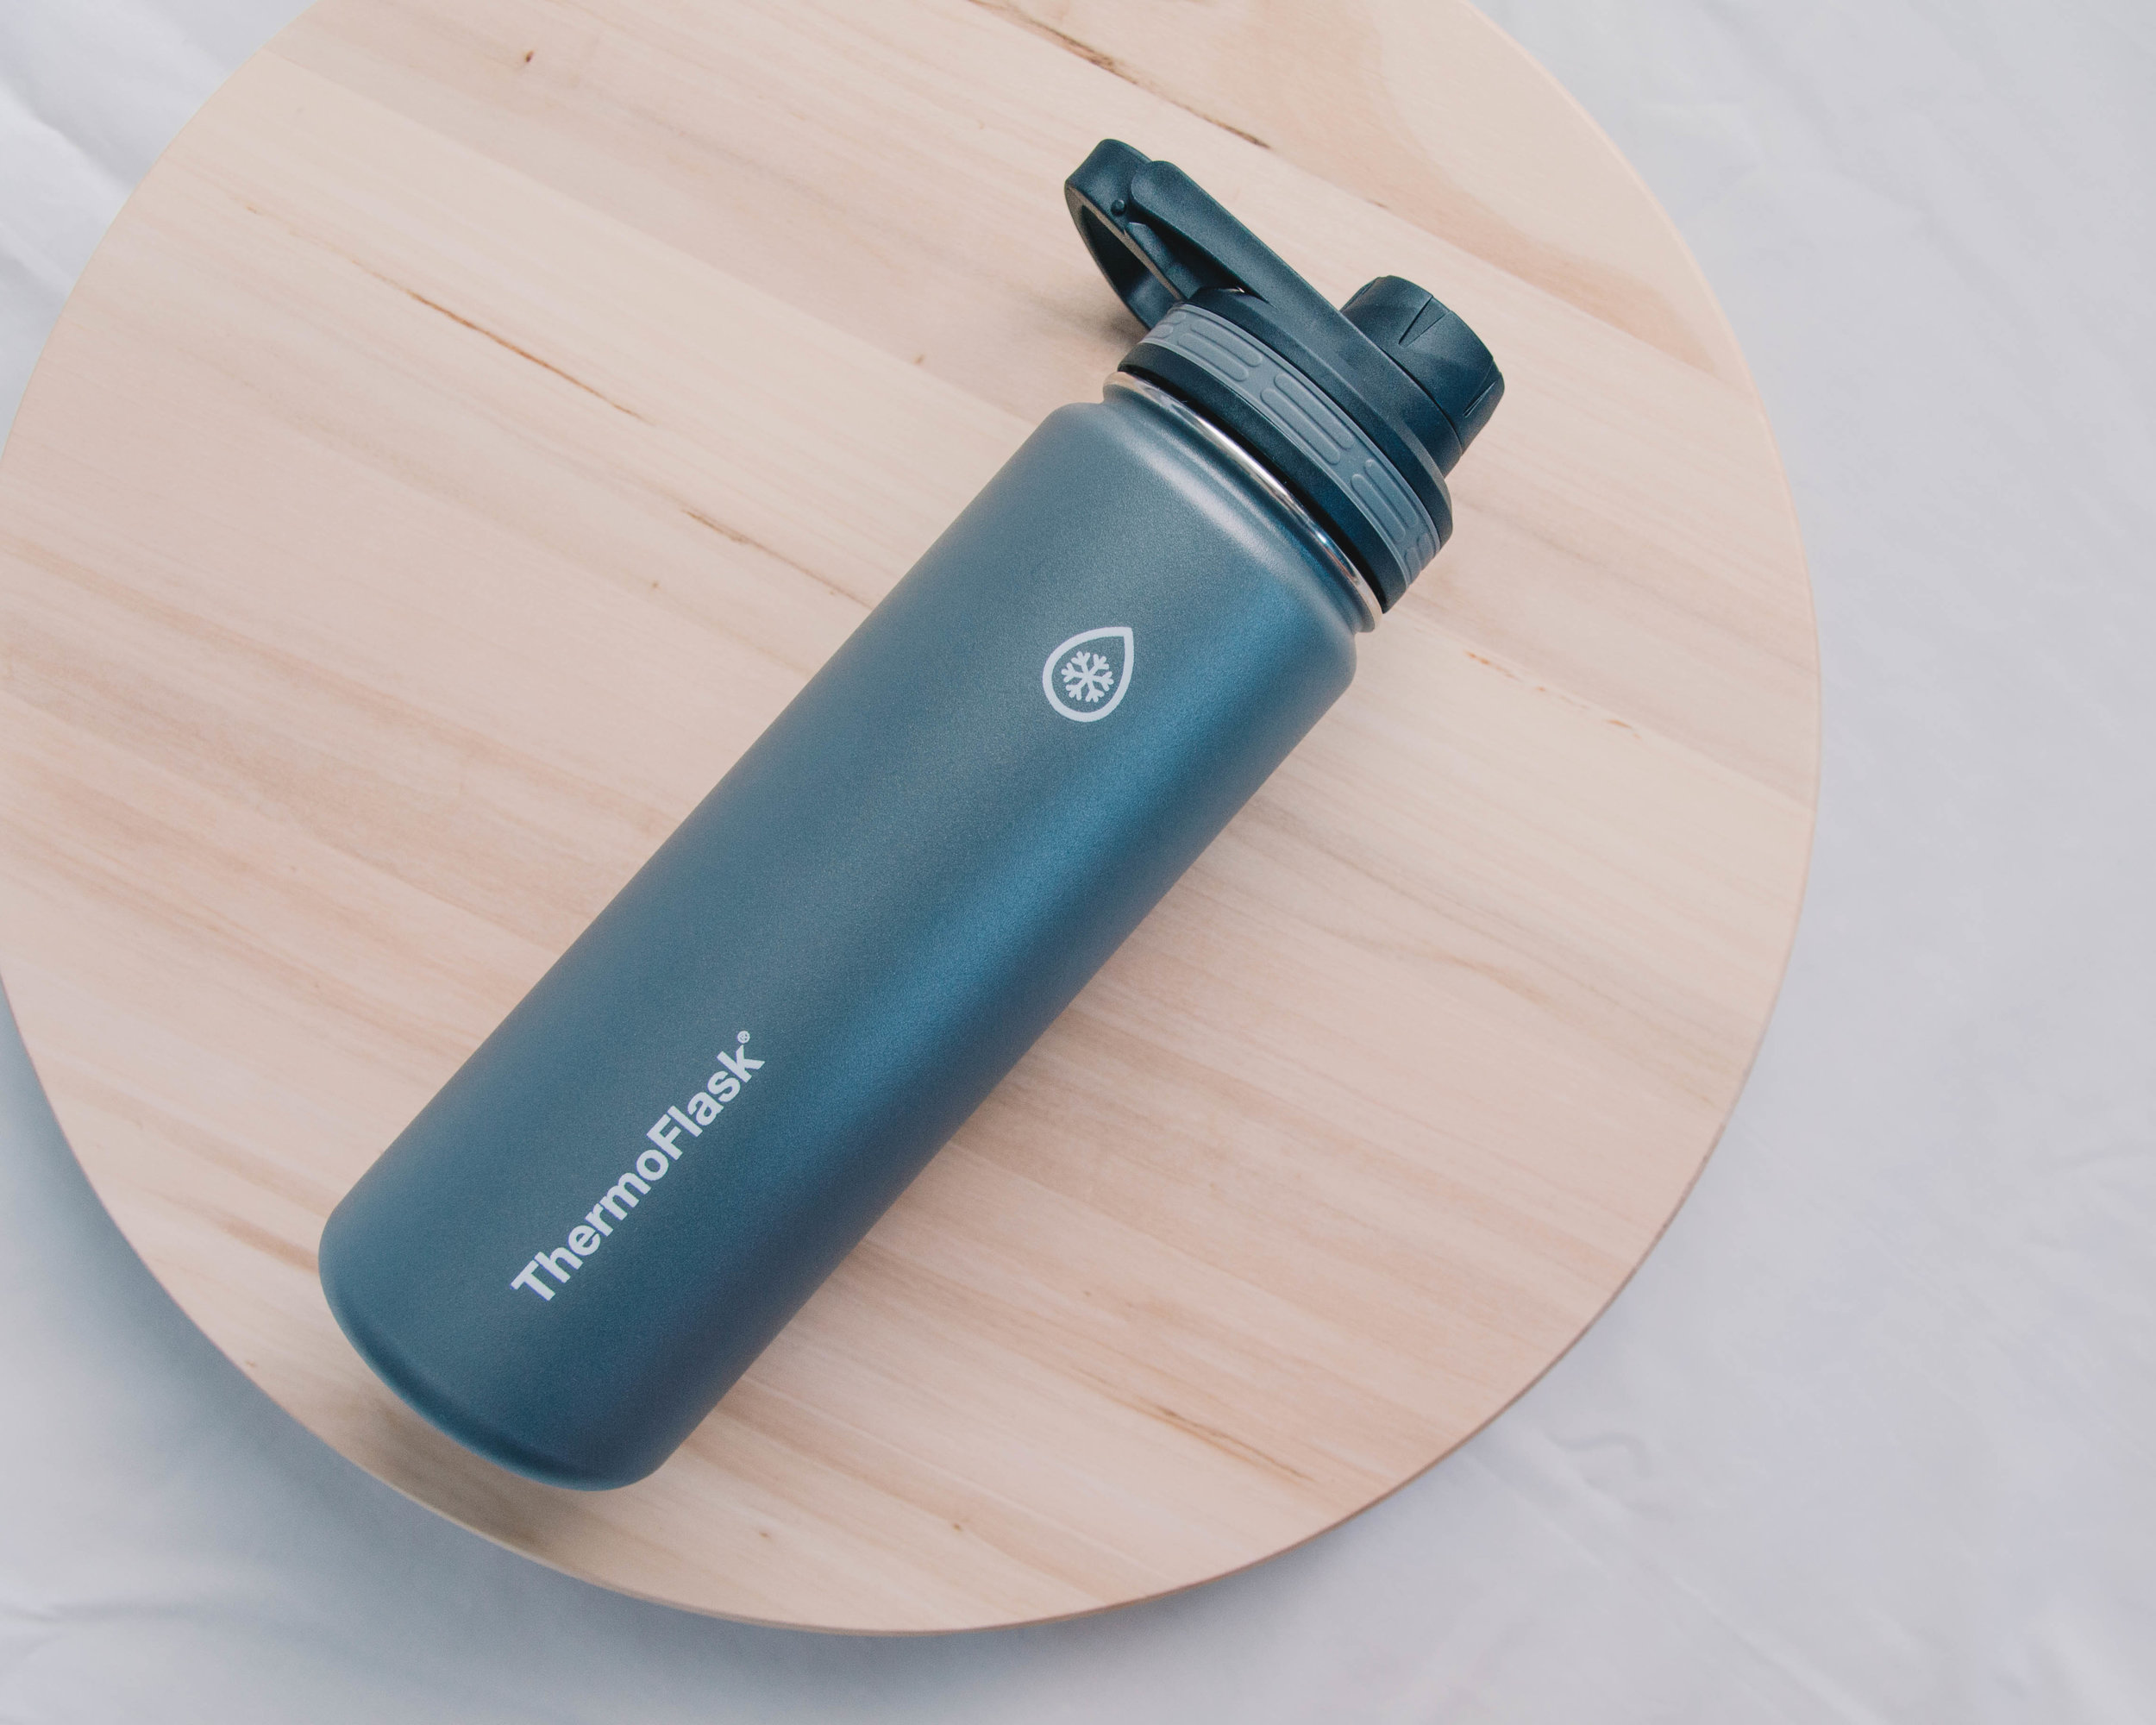 reusable waterbottle - There's no point paying for water when it's free.